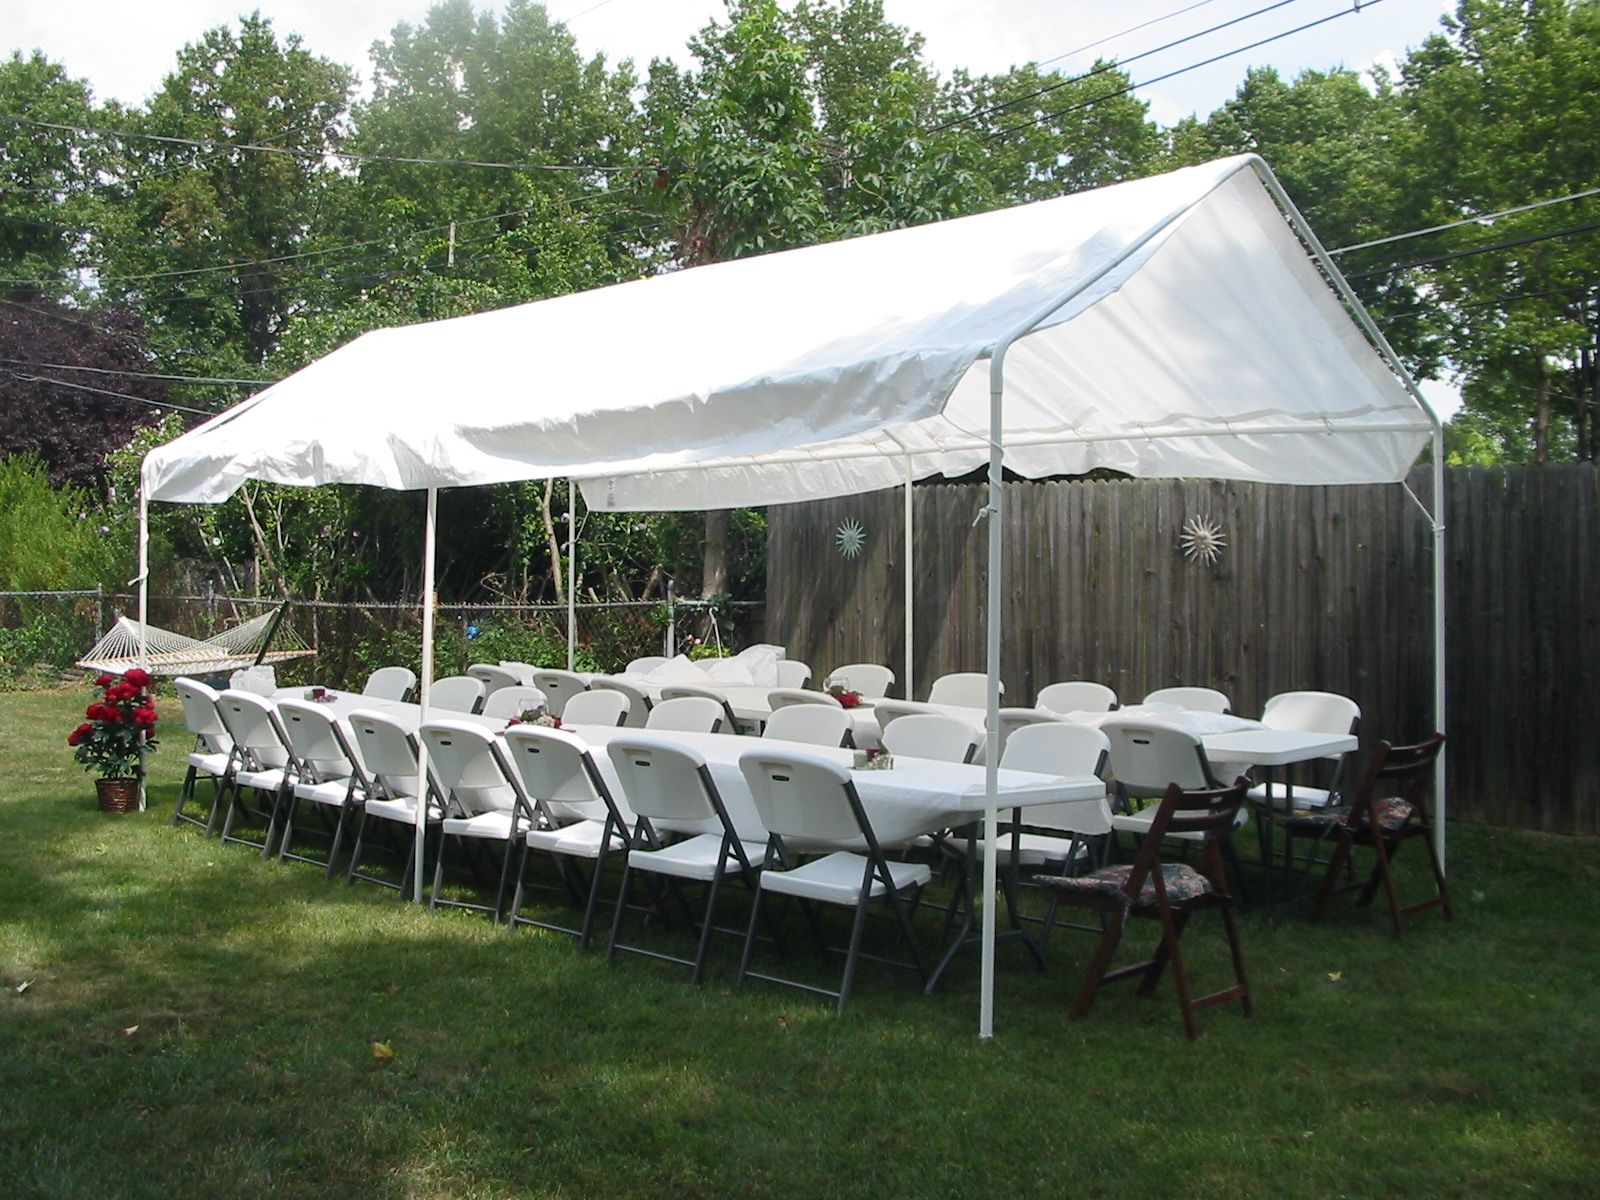 Quictent 10 X 20 Party Tent With 4 Sides And 2 Zipper Doors White Party Tent Party Tents For Sale Carport Tent